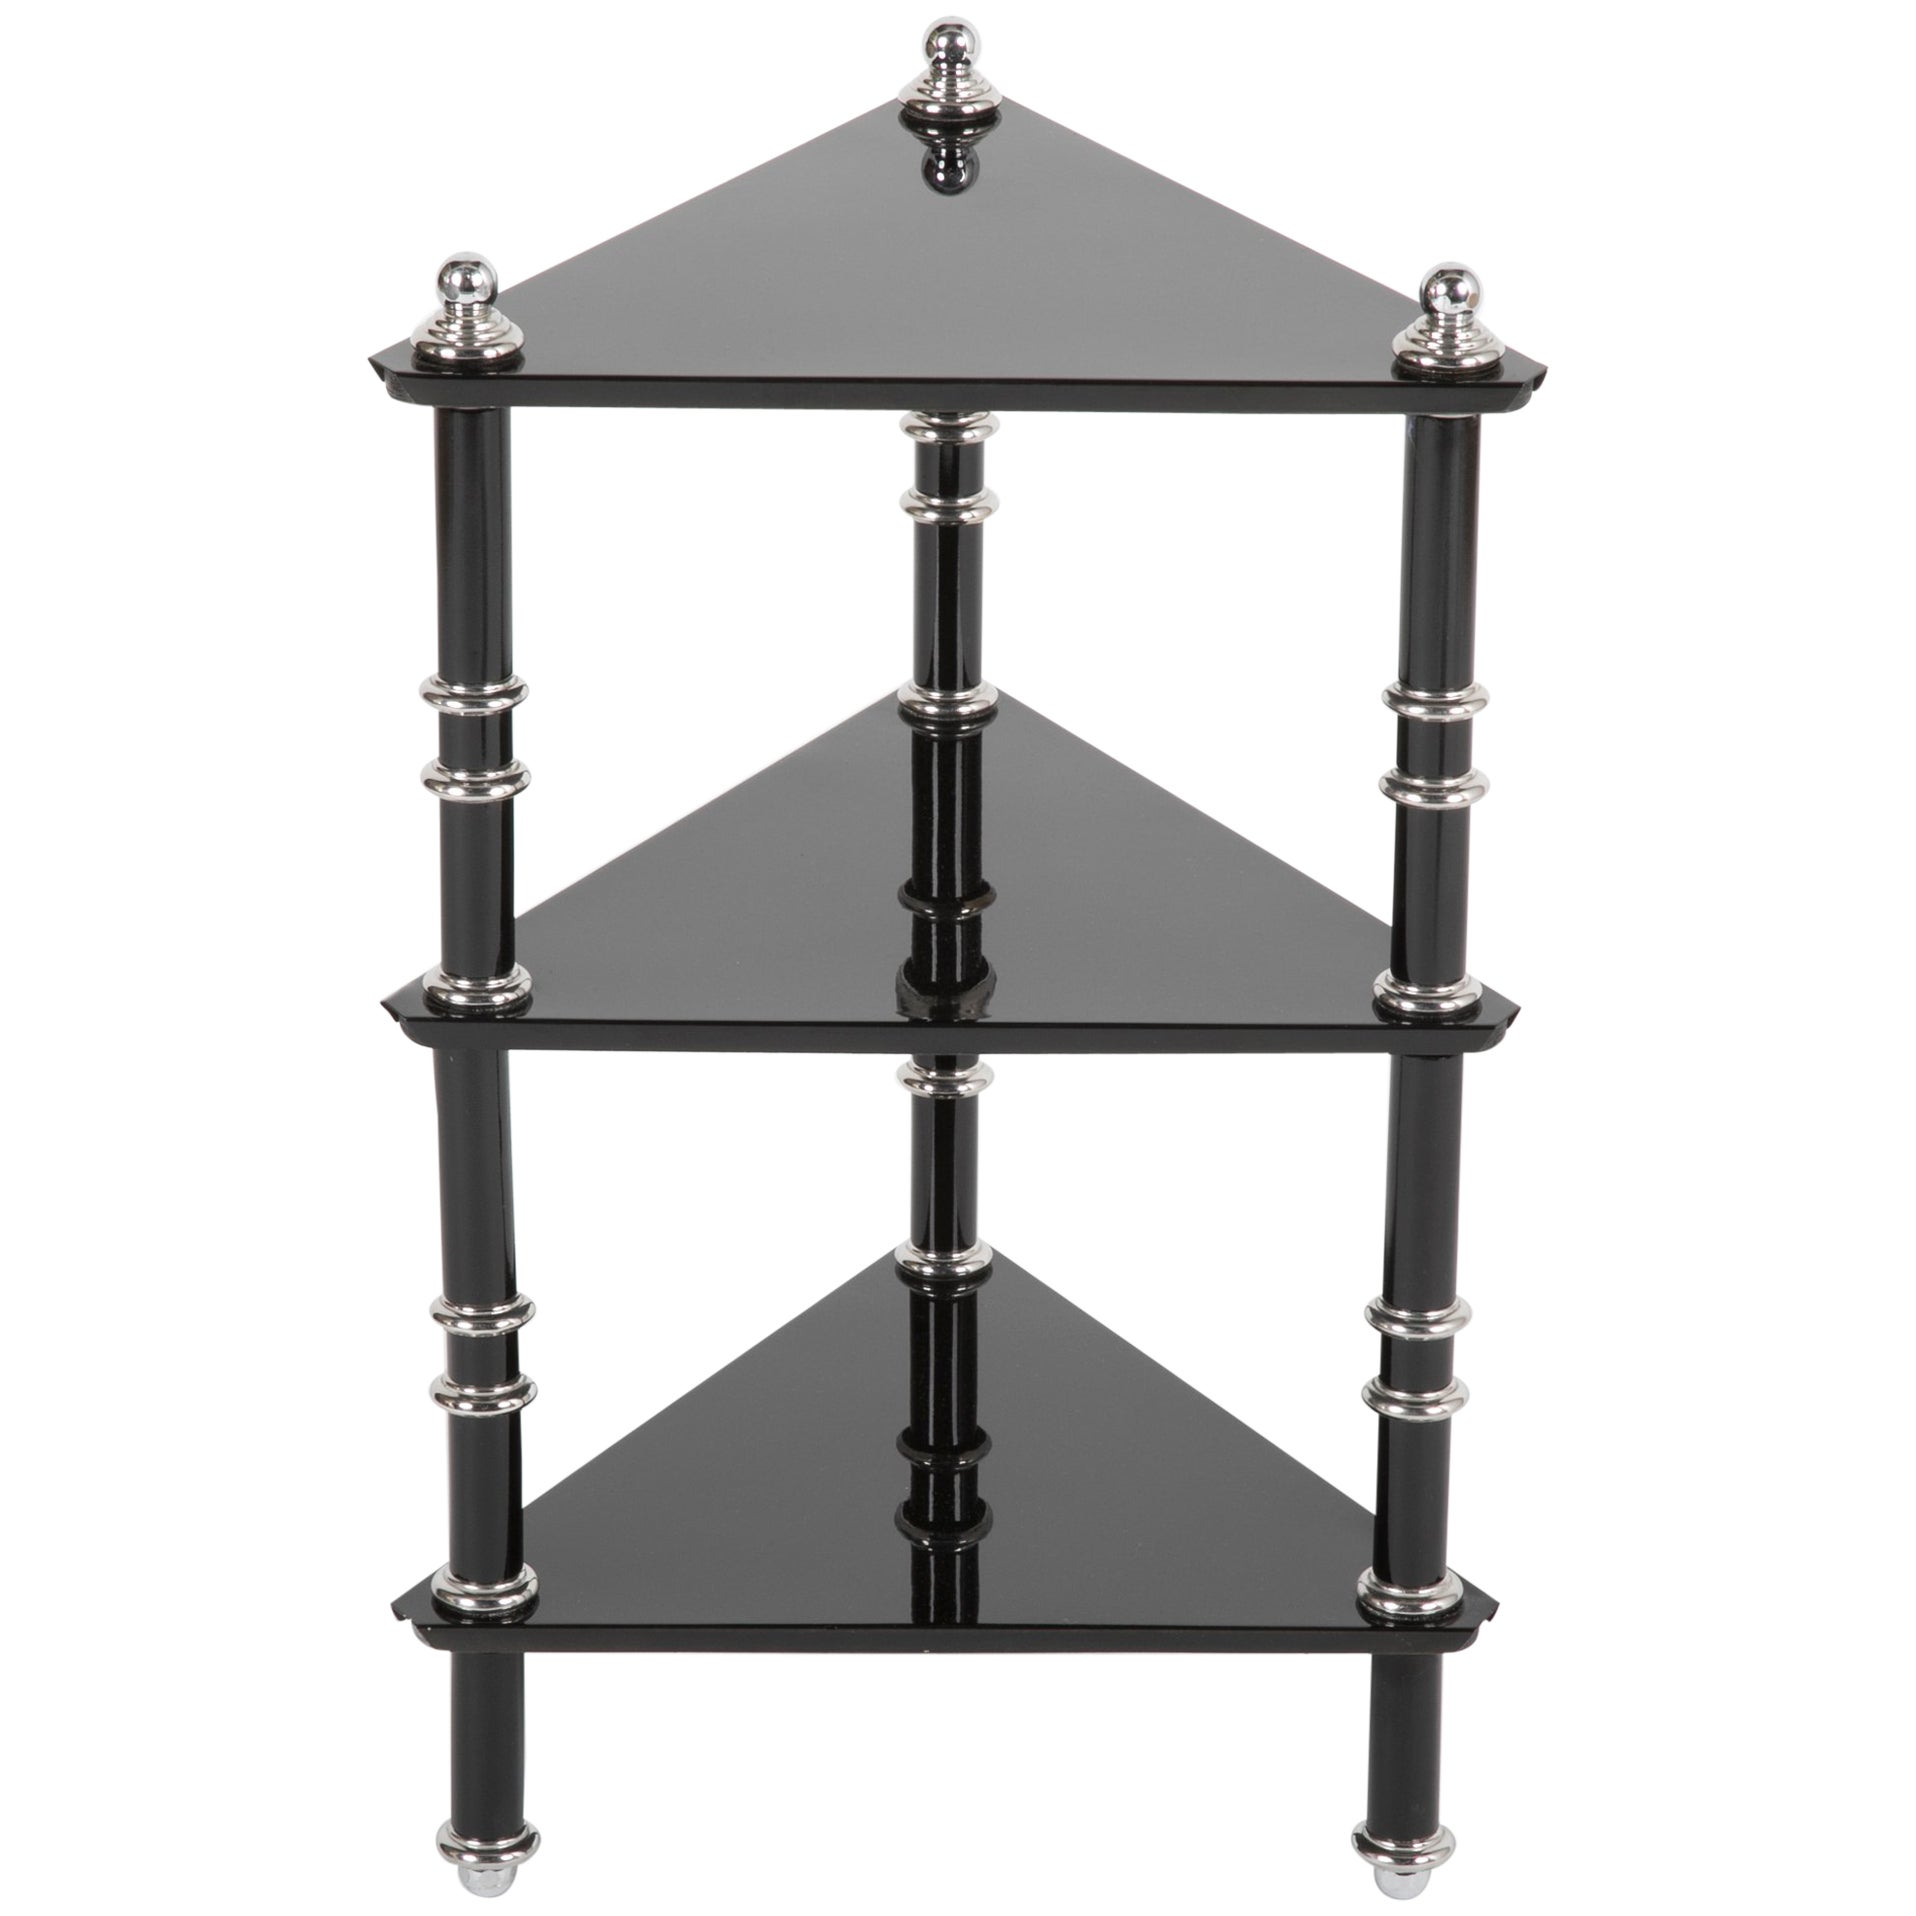 Rare Transitional Side Table/Etagere  by Warren McArthur